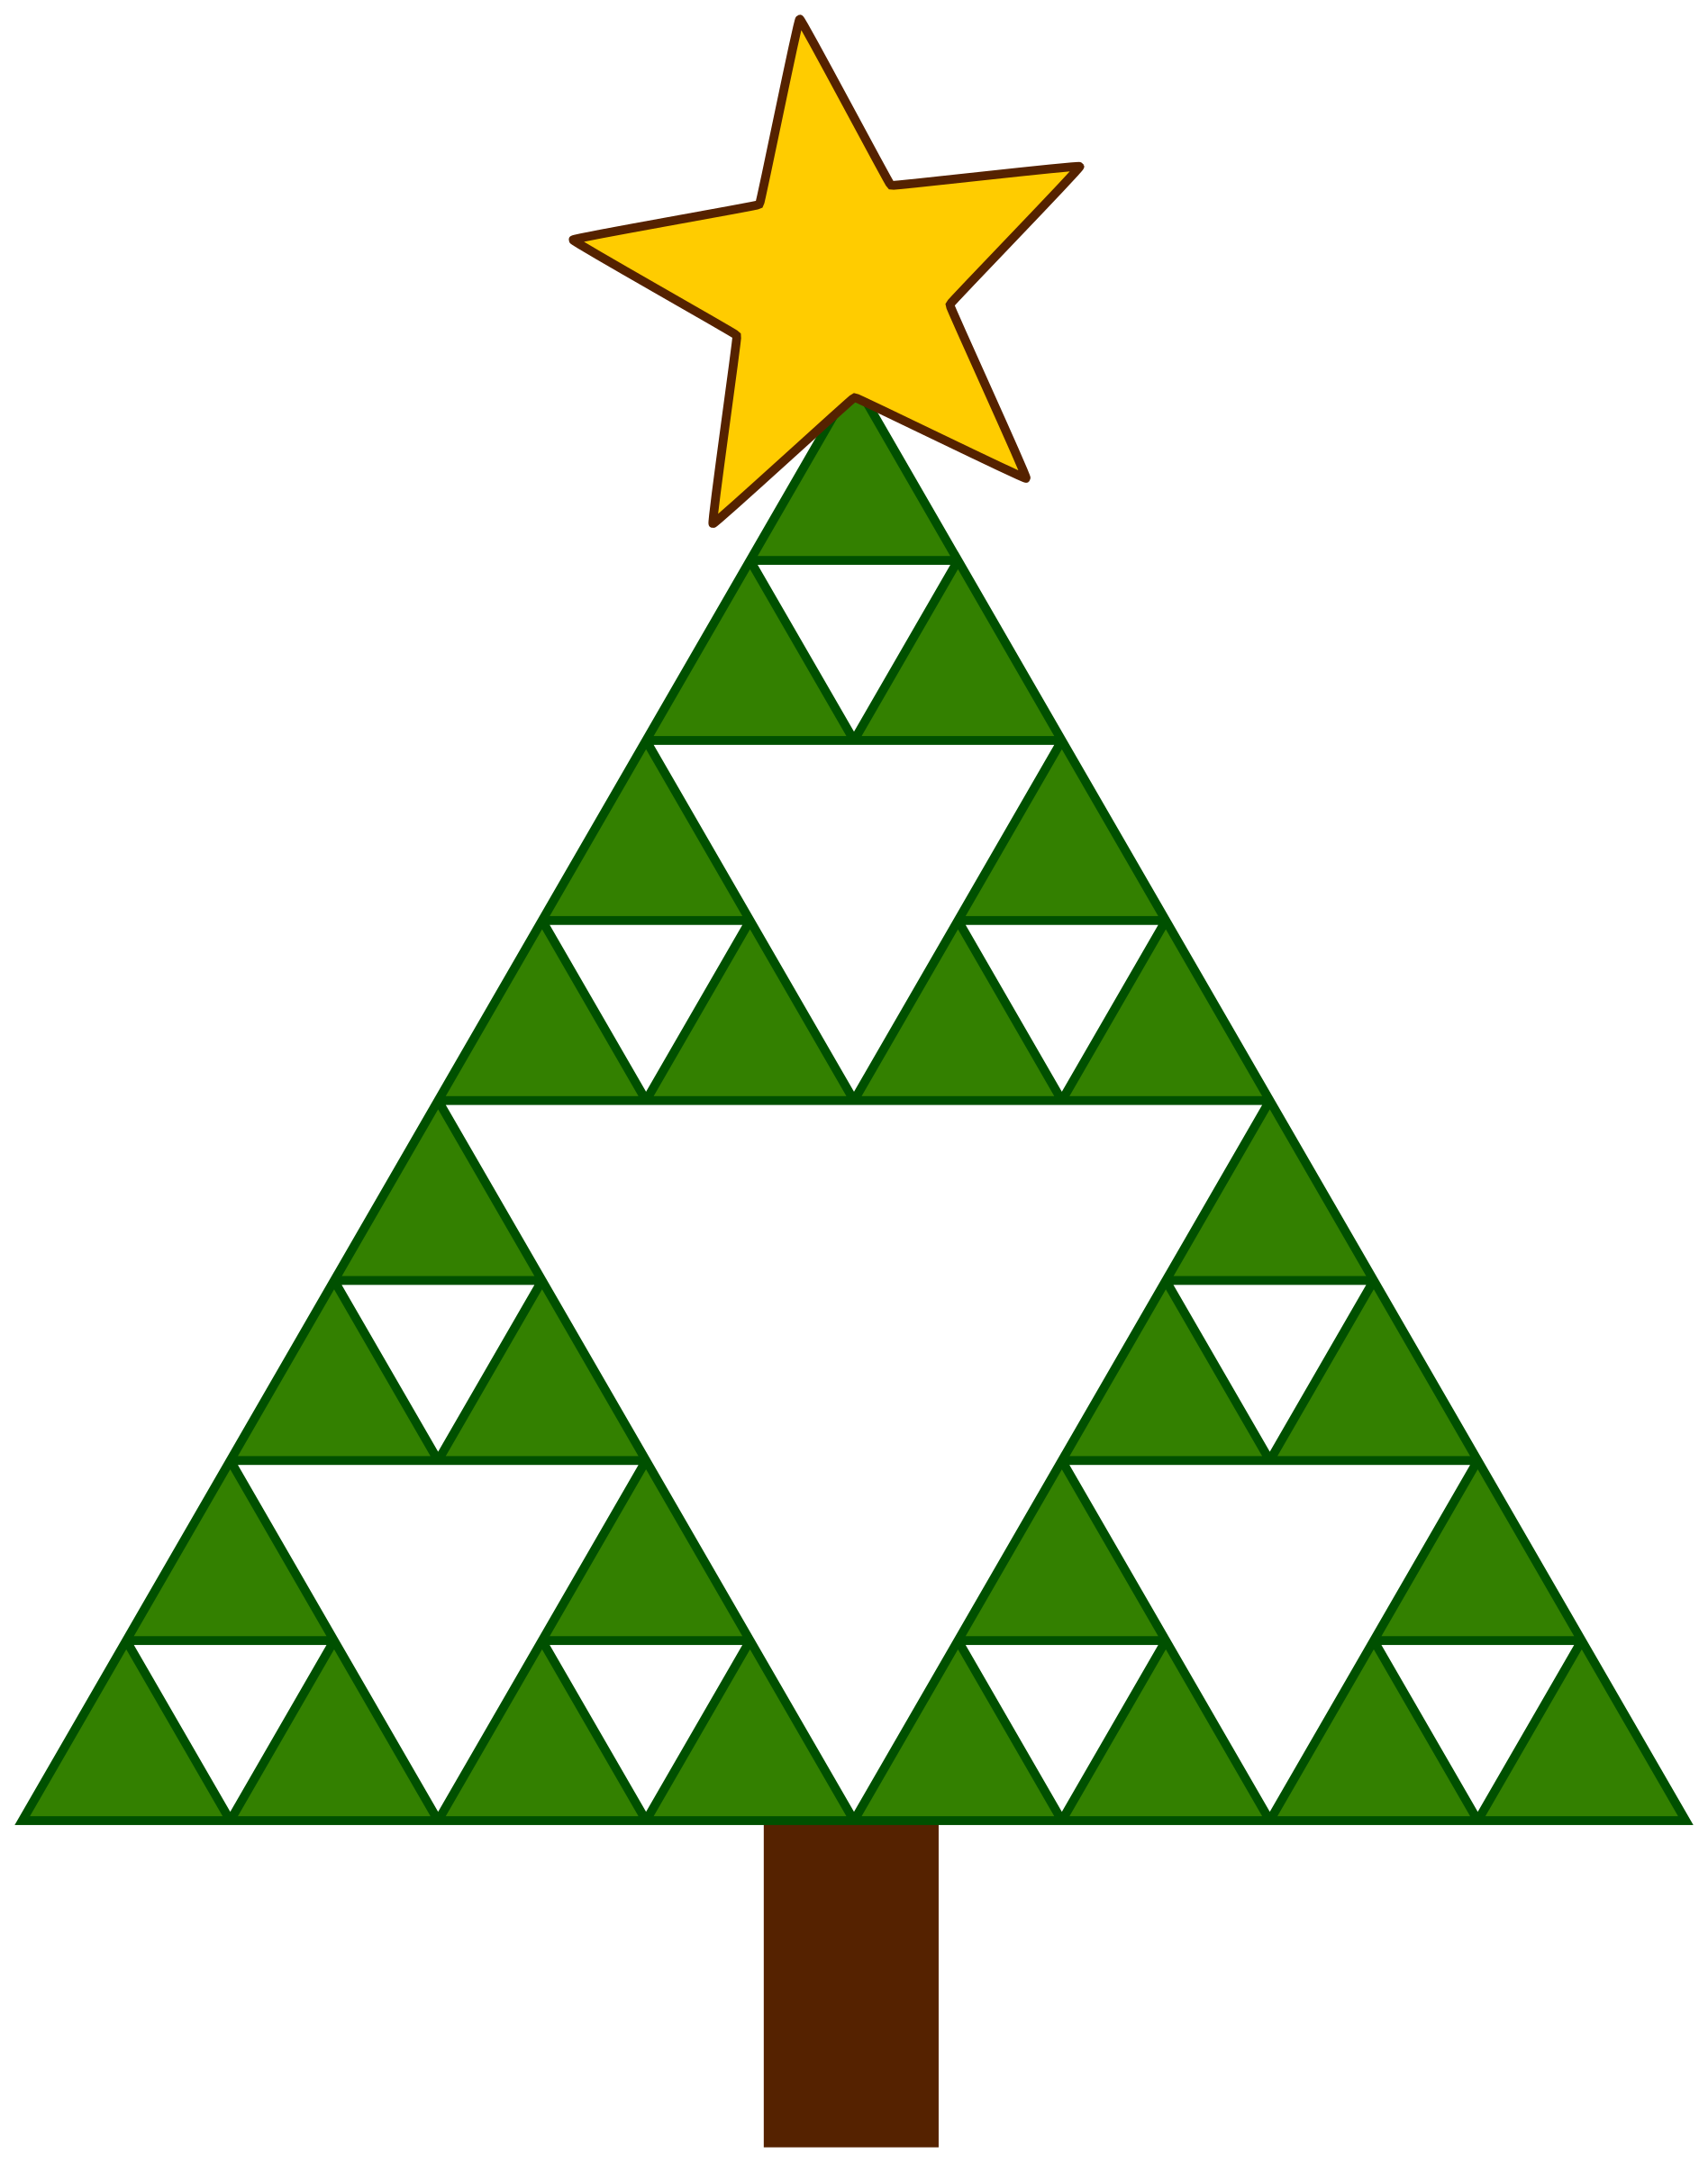 Sierpinski Xmas Tree by pitr